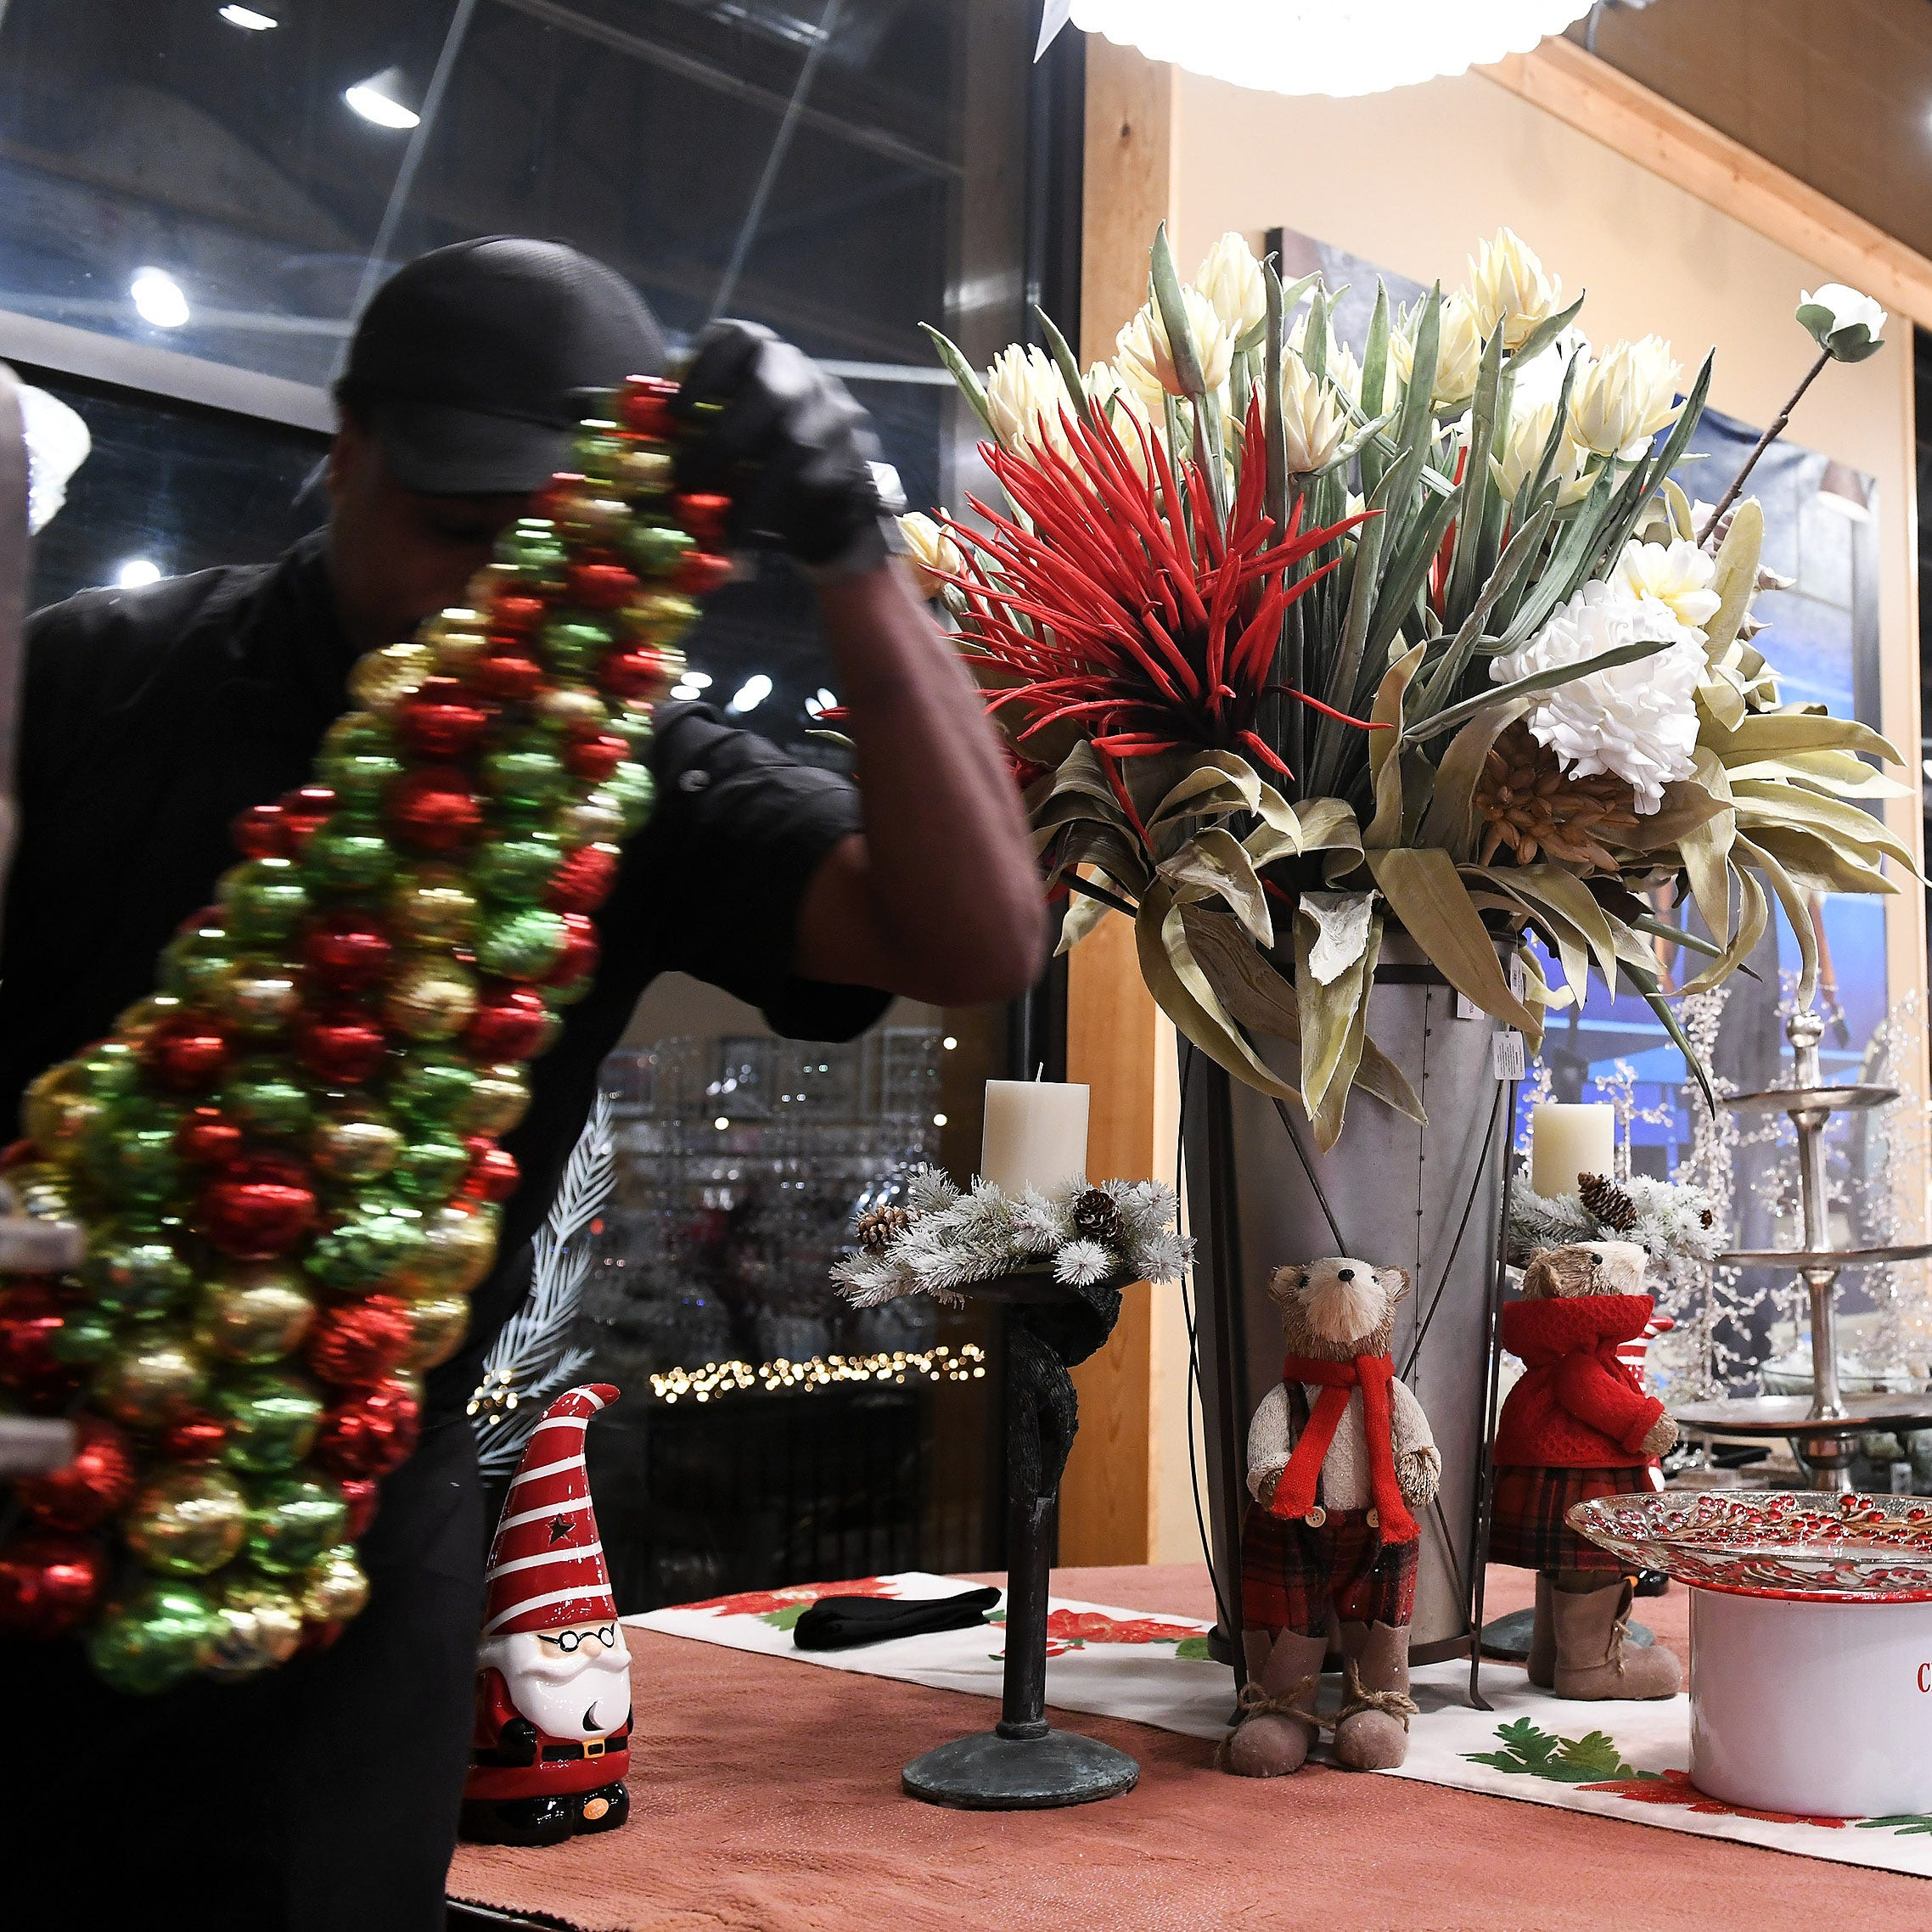 Dish & Design experts: Put new spin on holiday decorating, gift-giving this year